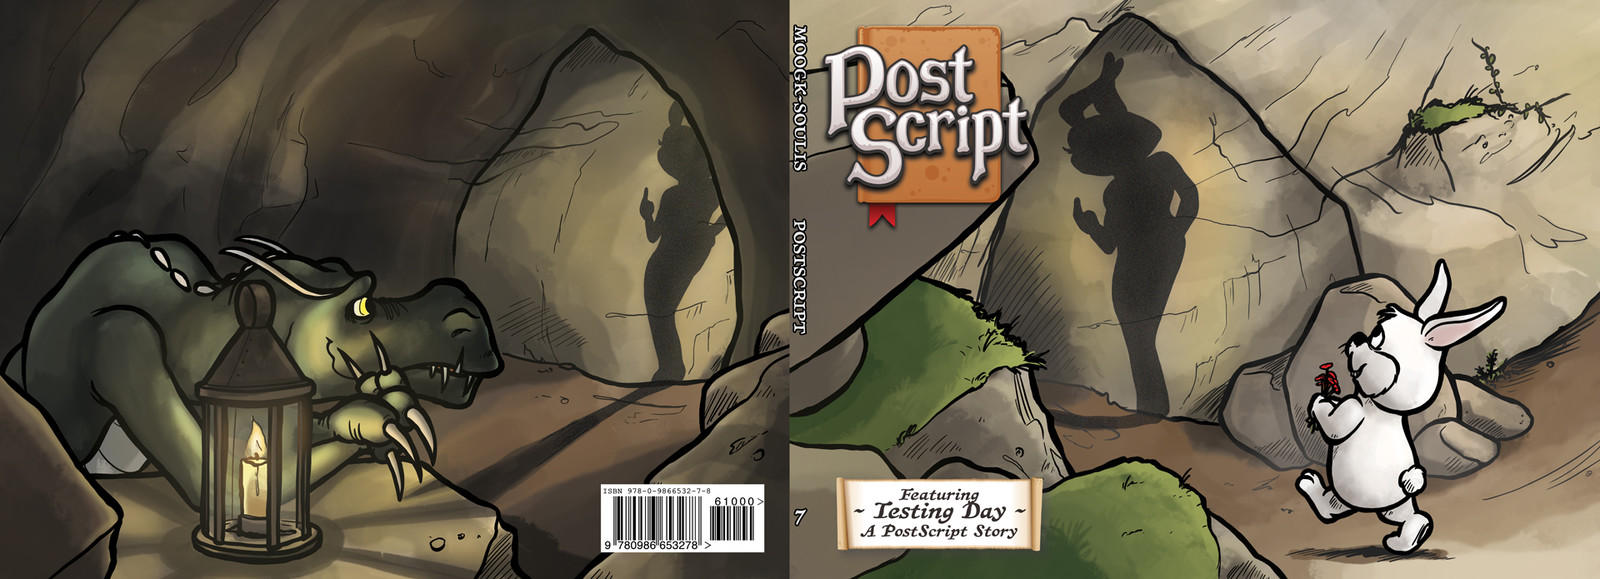 PostScript Book 7 cover with logo, barcode, etc.